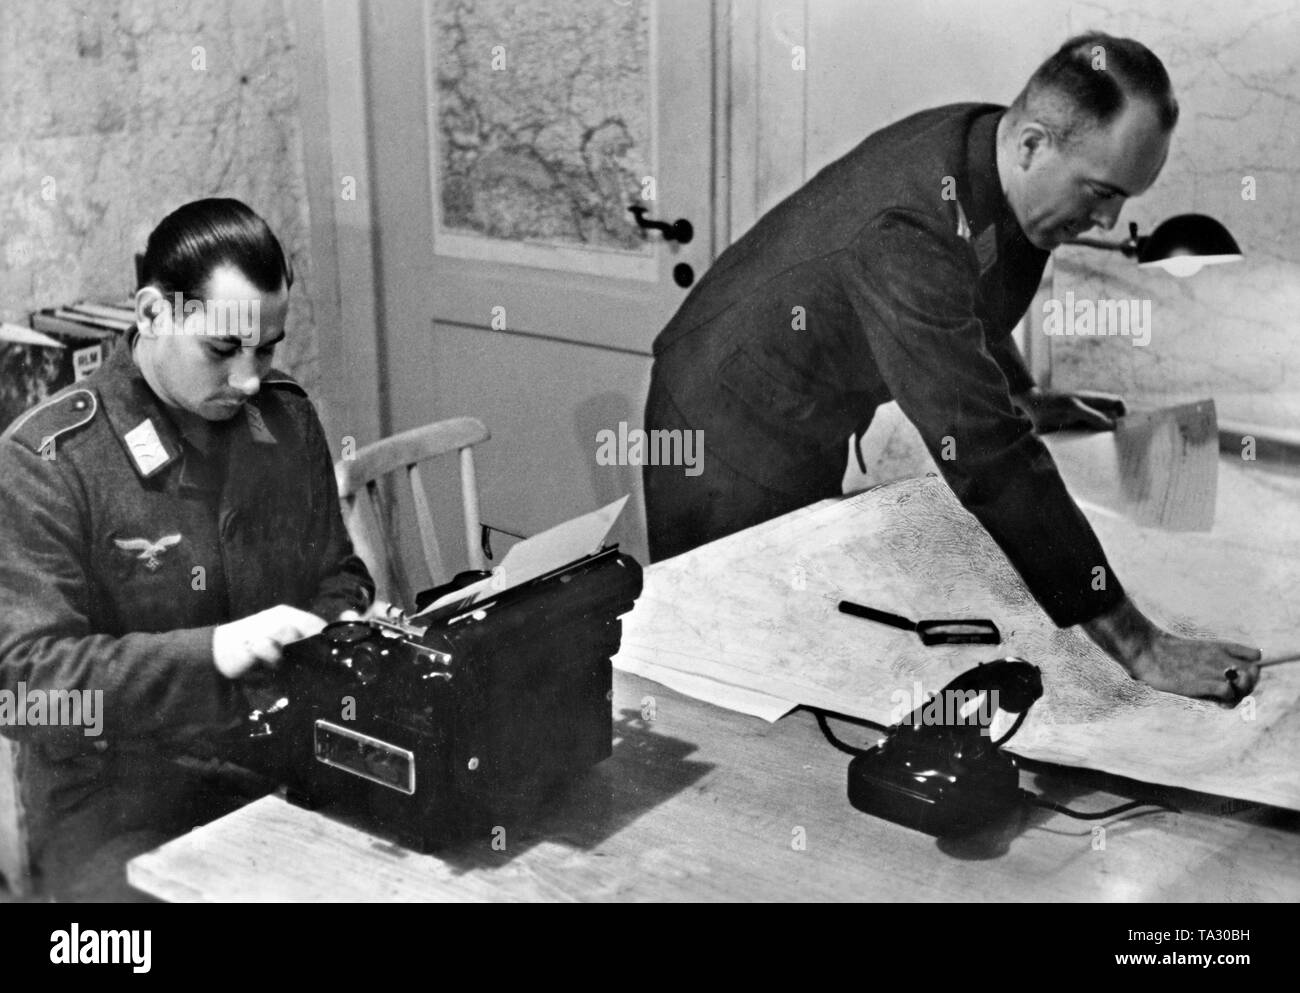 The staff officer of an army group dictates the military situation and the results of the reconnaissance to the typist. Photo: war correspondent Standartenfuehrer Seuffert. Stock Photo